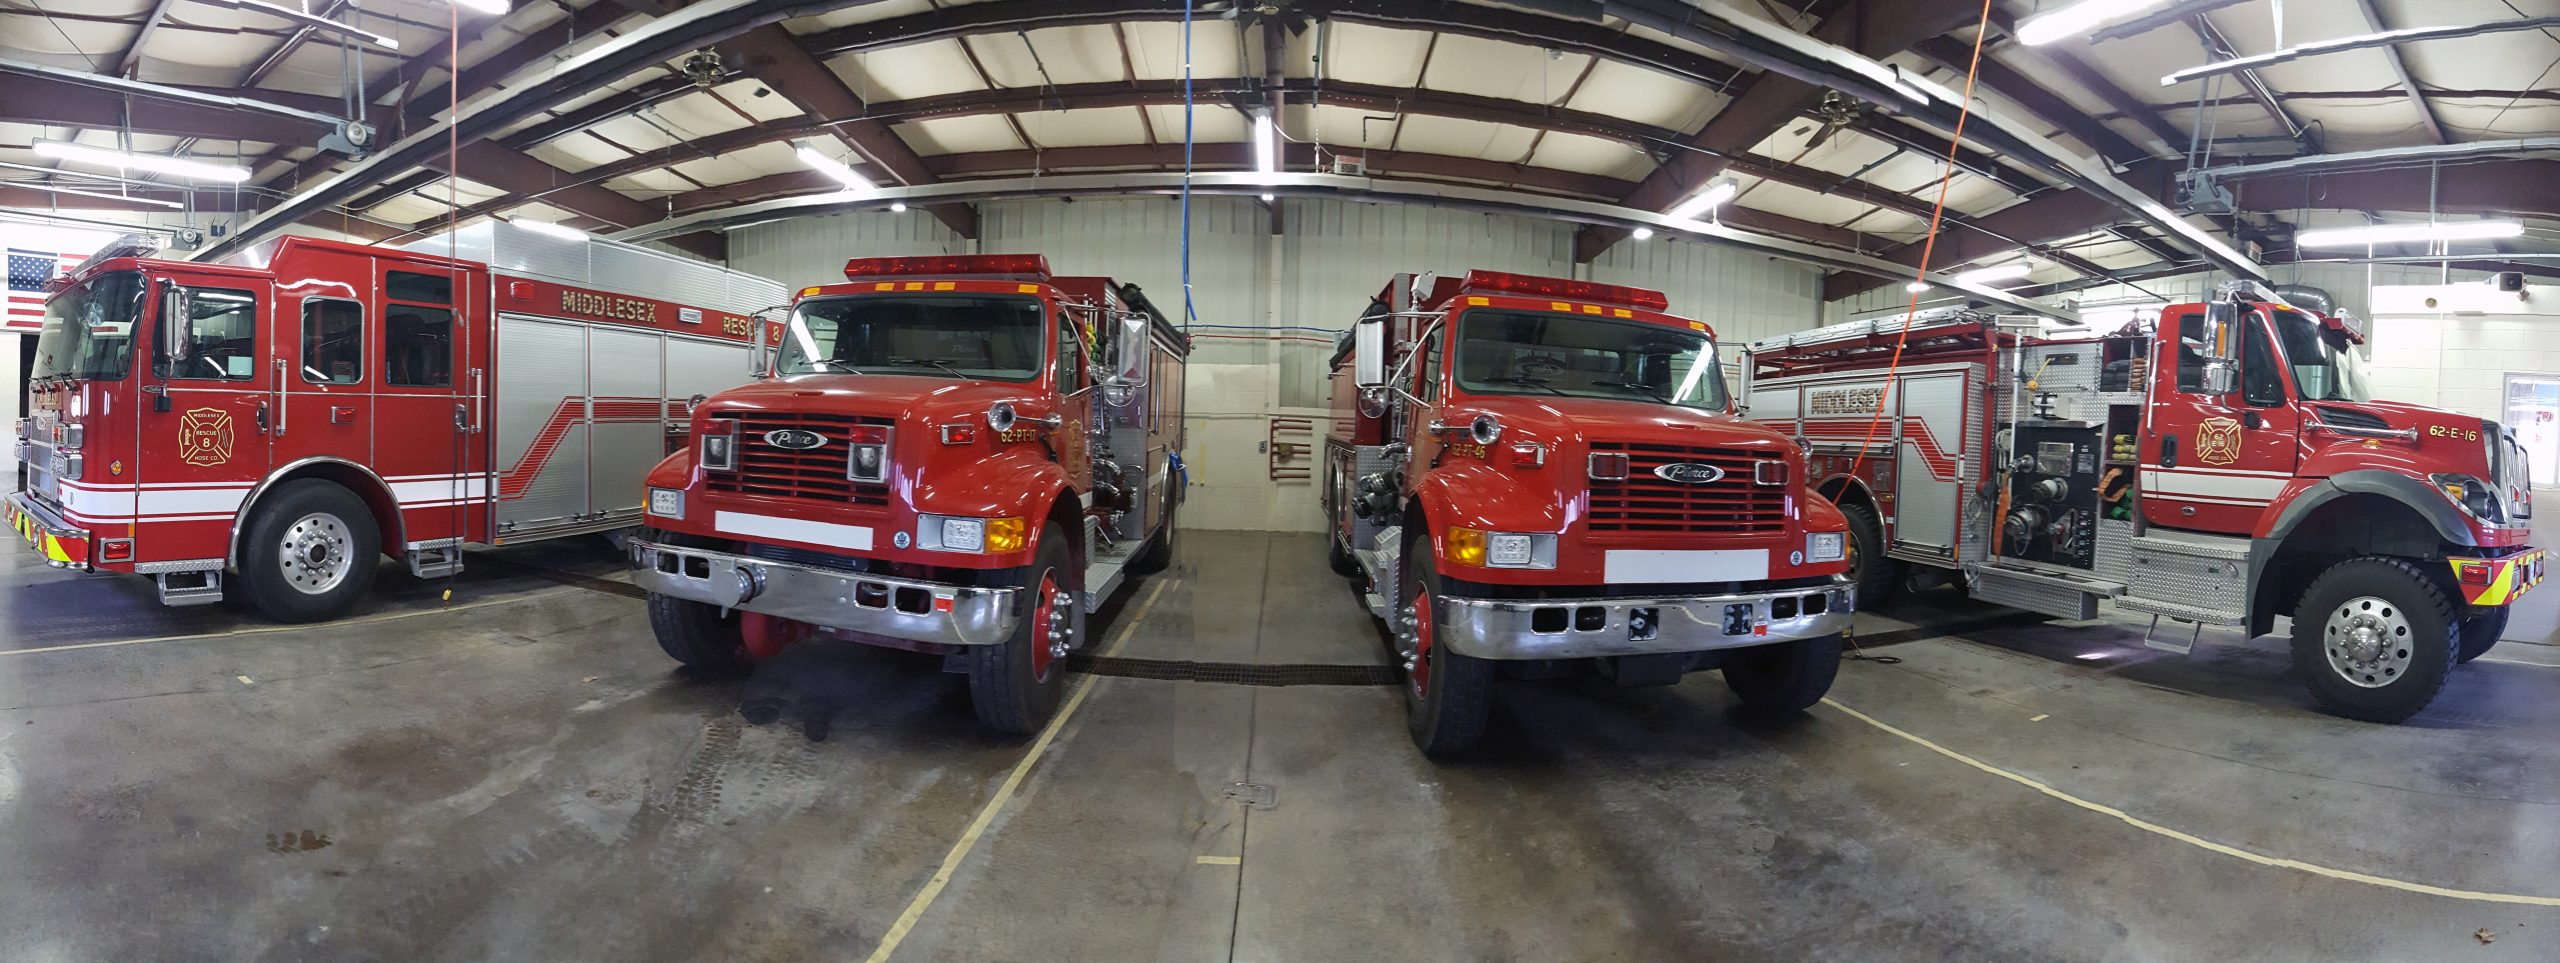 fire department trucks